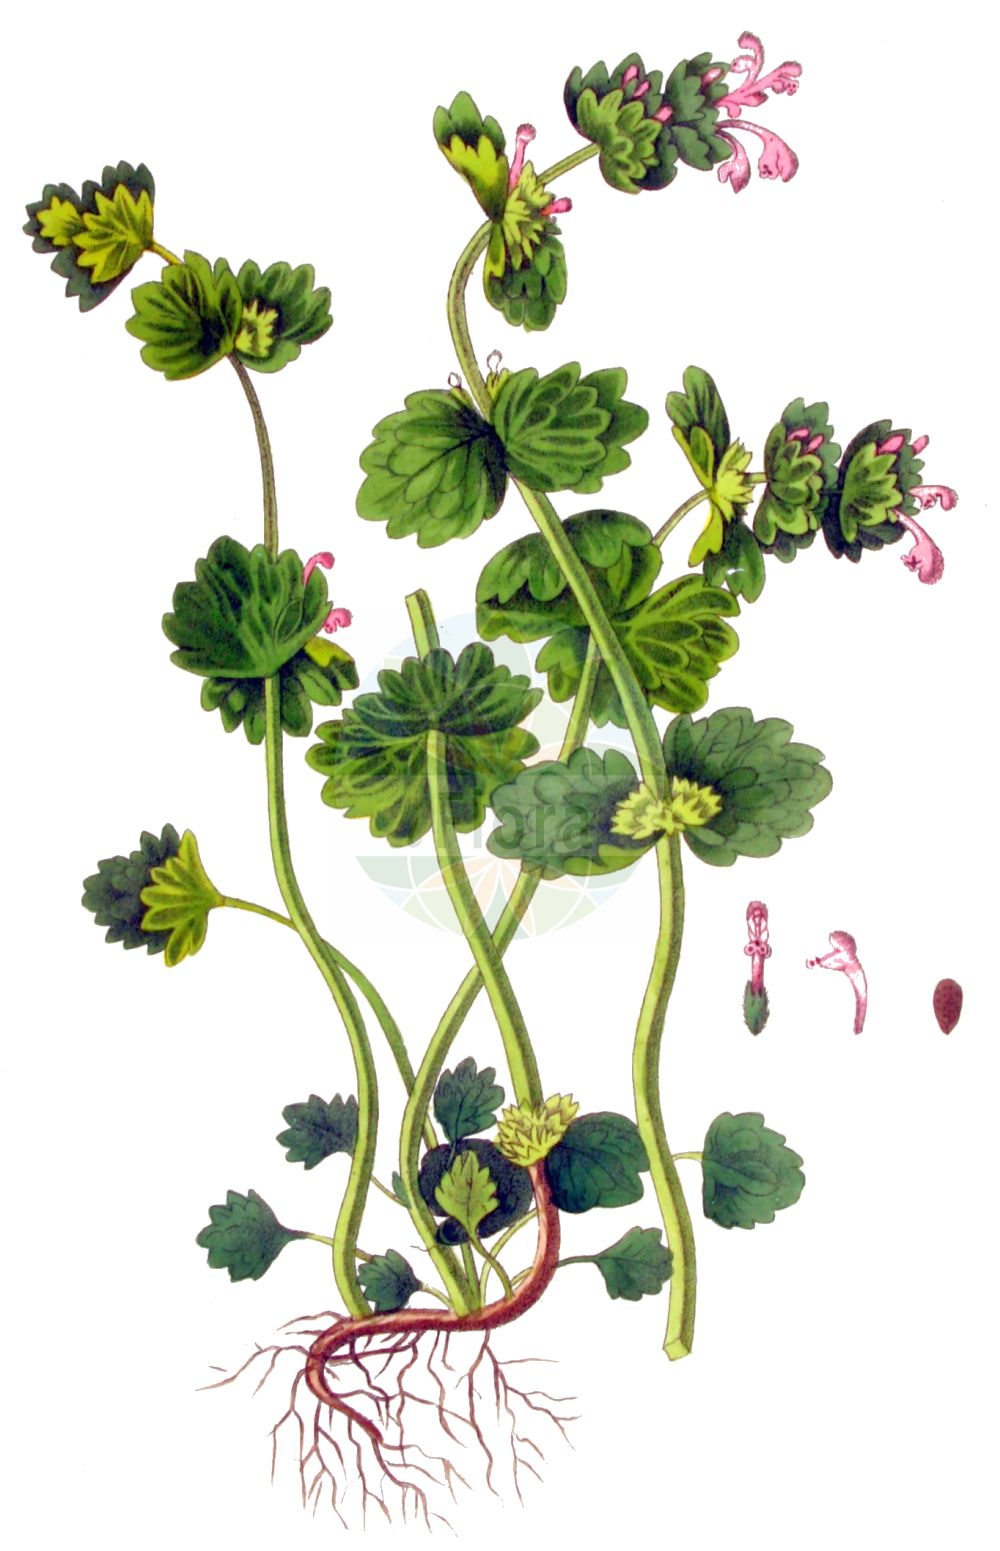 Historische Abbildung von Lamium amplexicaule (Staengelumfassende Taubnessel - Henbit Dead-nettle). Das Bild zeigt Blatt, Bluete, Frucht und Same. ---- Historical Drawing of Lamium amplexicaule (Staengelumfassende Taubnessel - Henbit Dead-nettle).The image is showing leaf, flower, fruit and seed.(Lamium amplexicaule,Staengelumfassende Taubnessel,Henbit Dead-nettle,Galeobdolon amplexicaule,Lamiella amplexicaulis,Lamiopsis amplexicaulis,Lamium amplexicaule,Pollichia amplexicaulis,Staengelumfassende Taubnessel,Stengelumfassende Taubnessel,Henbit Dead-nettle,Common Deadnettle,Common Henbit,Henbit,Lamium,Taubnessel,Deadnettle,Lamiaceae,Lippenbluetengewaechse,Lippenbluetler,Nettle family,Blatt,Bluete,Frucht,Same,leaf,flower,fruit,seed,Kops (1800-1934))